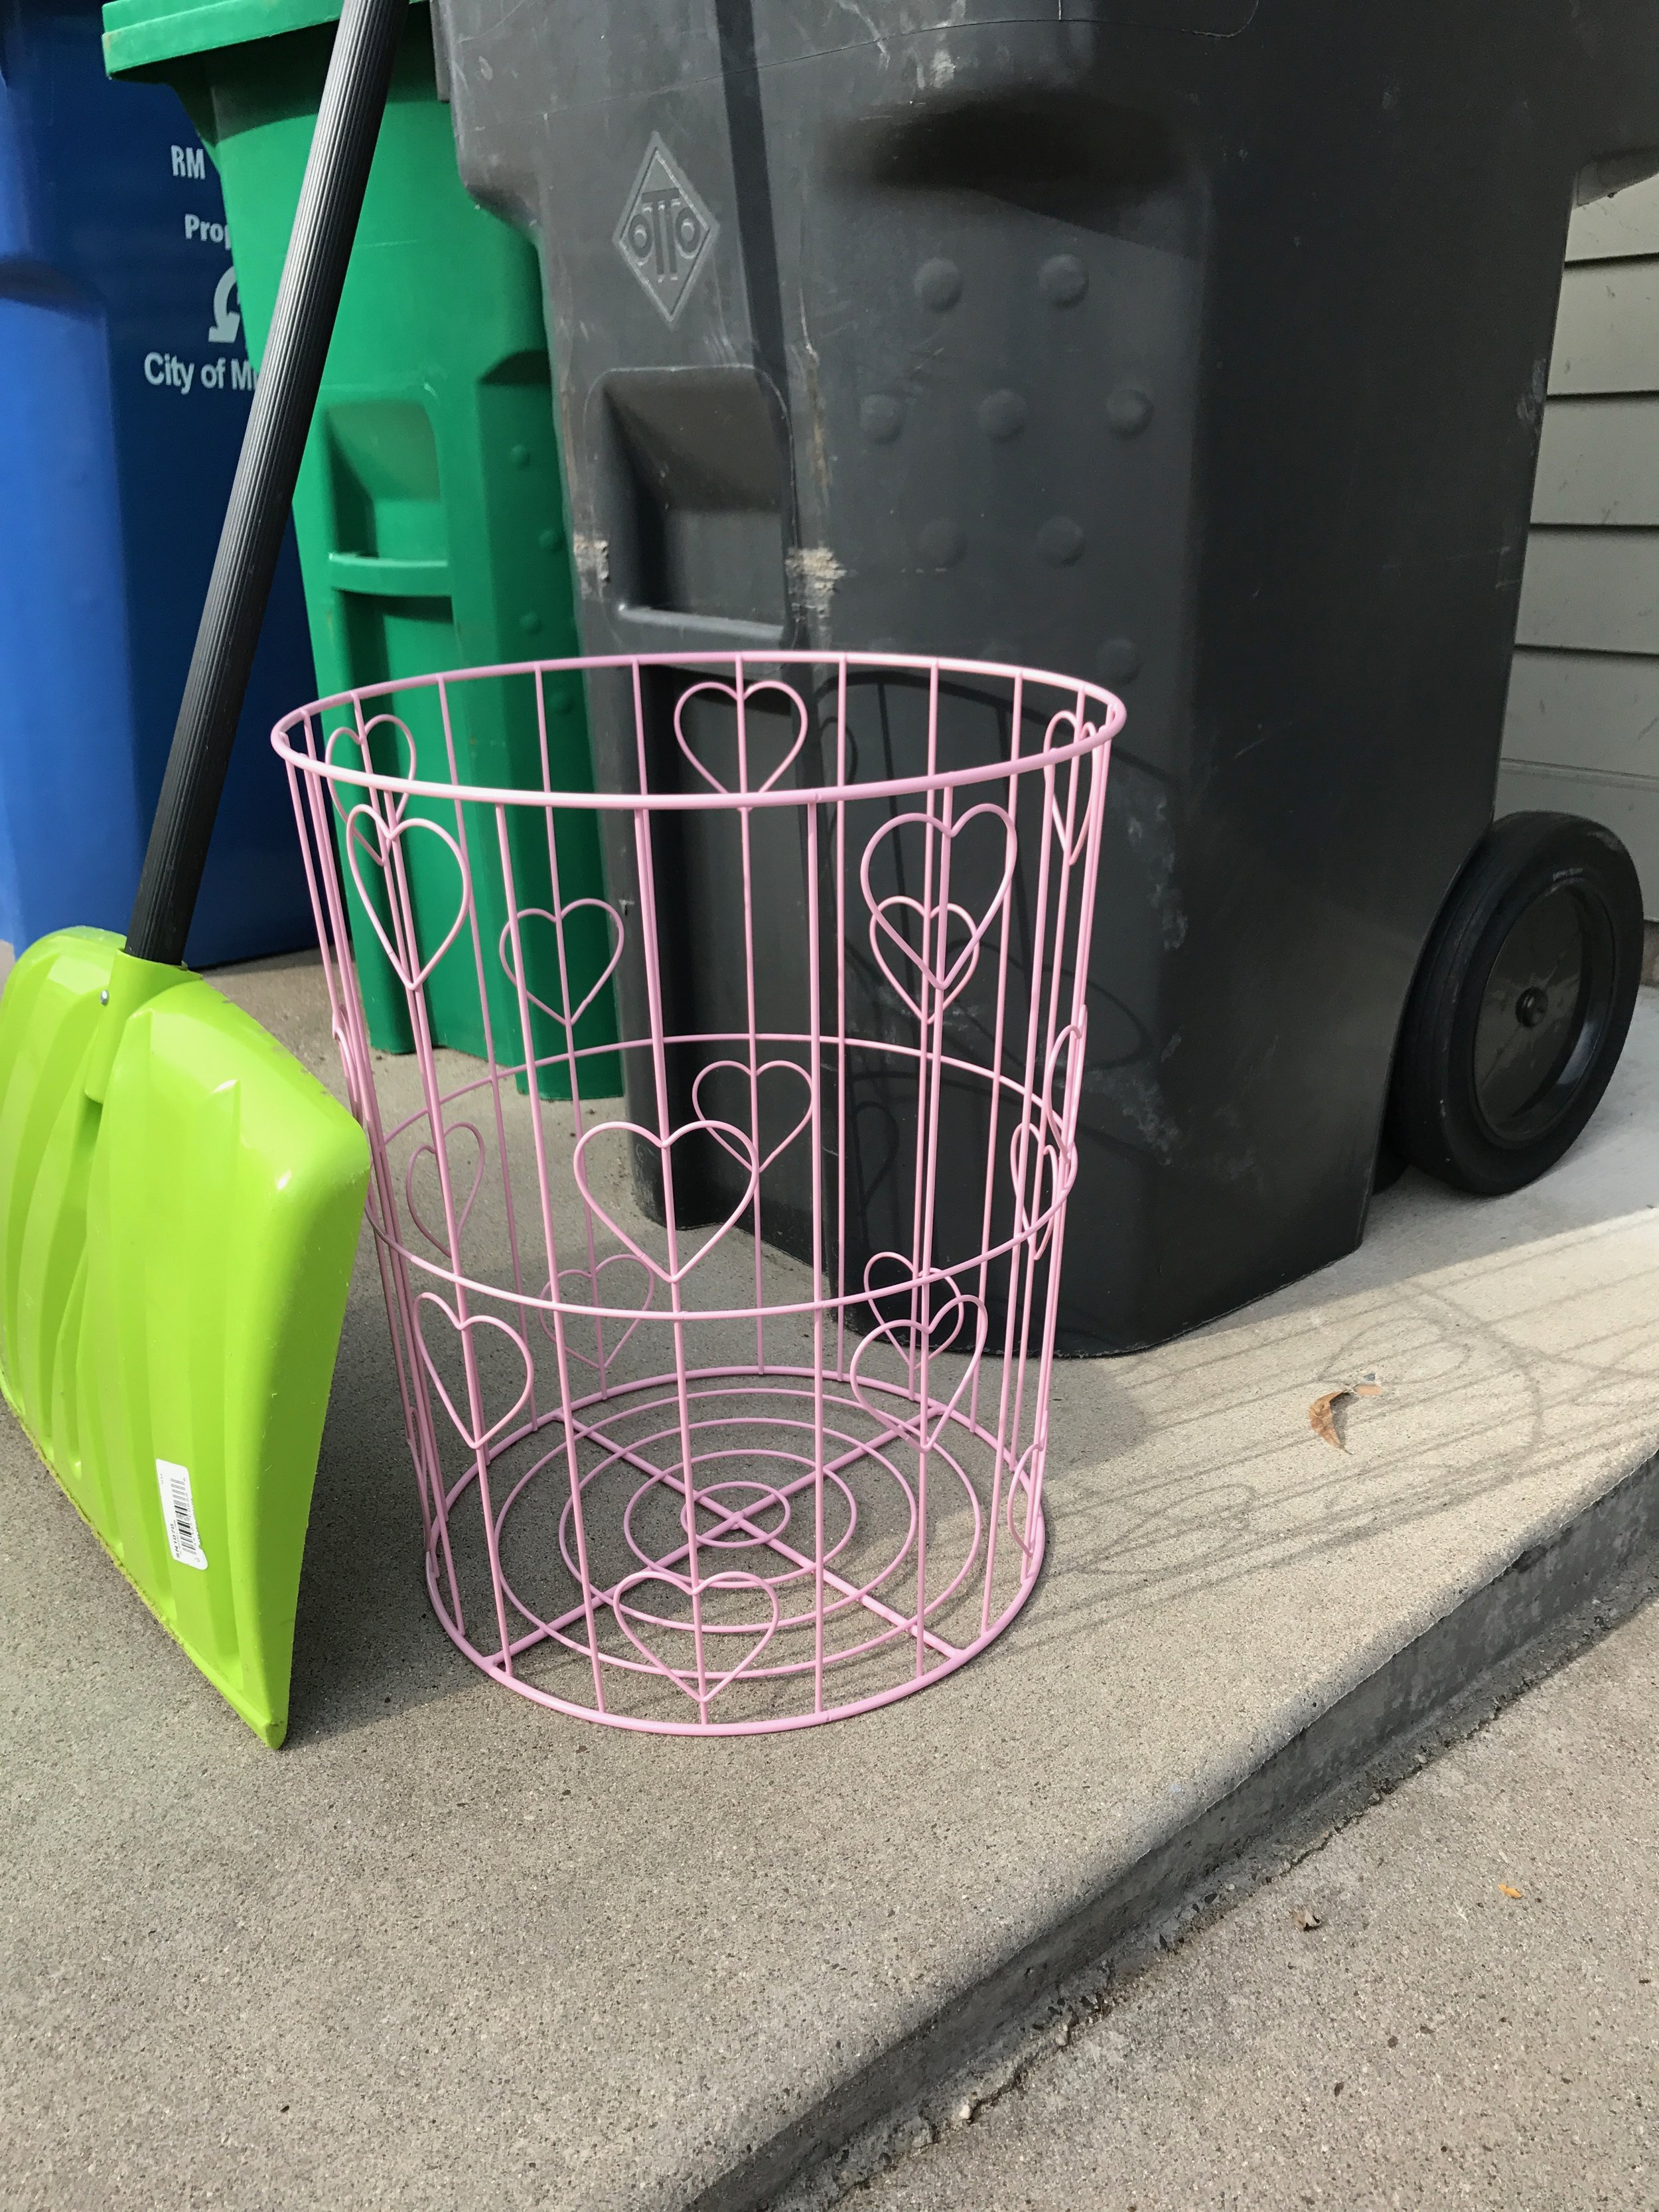 One man's trash is another man's treasure. My neighbor was getting rid of this cute pink basket and I scooped it up to give to the Simpson House for a family with two girls.